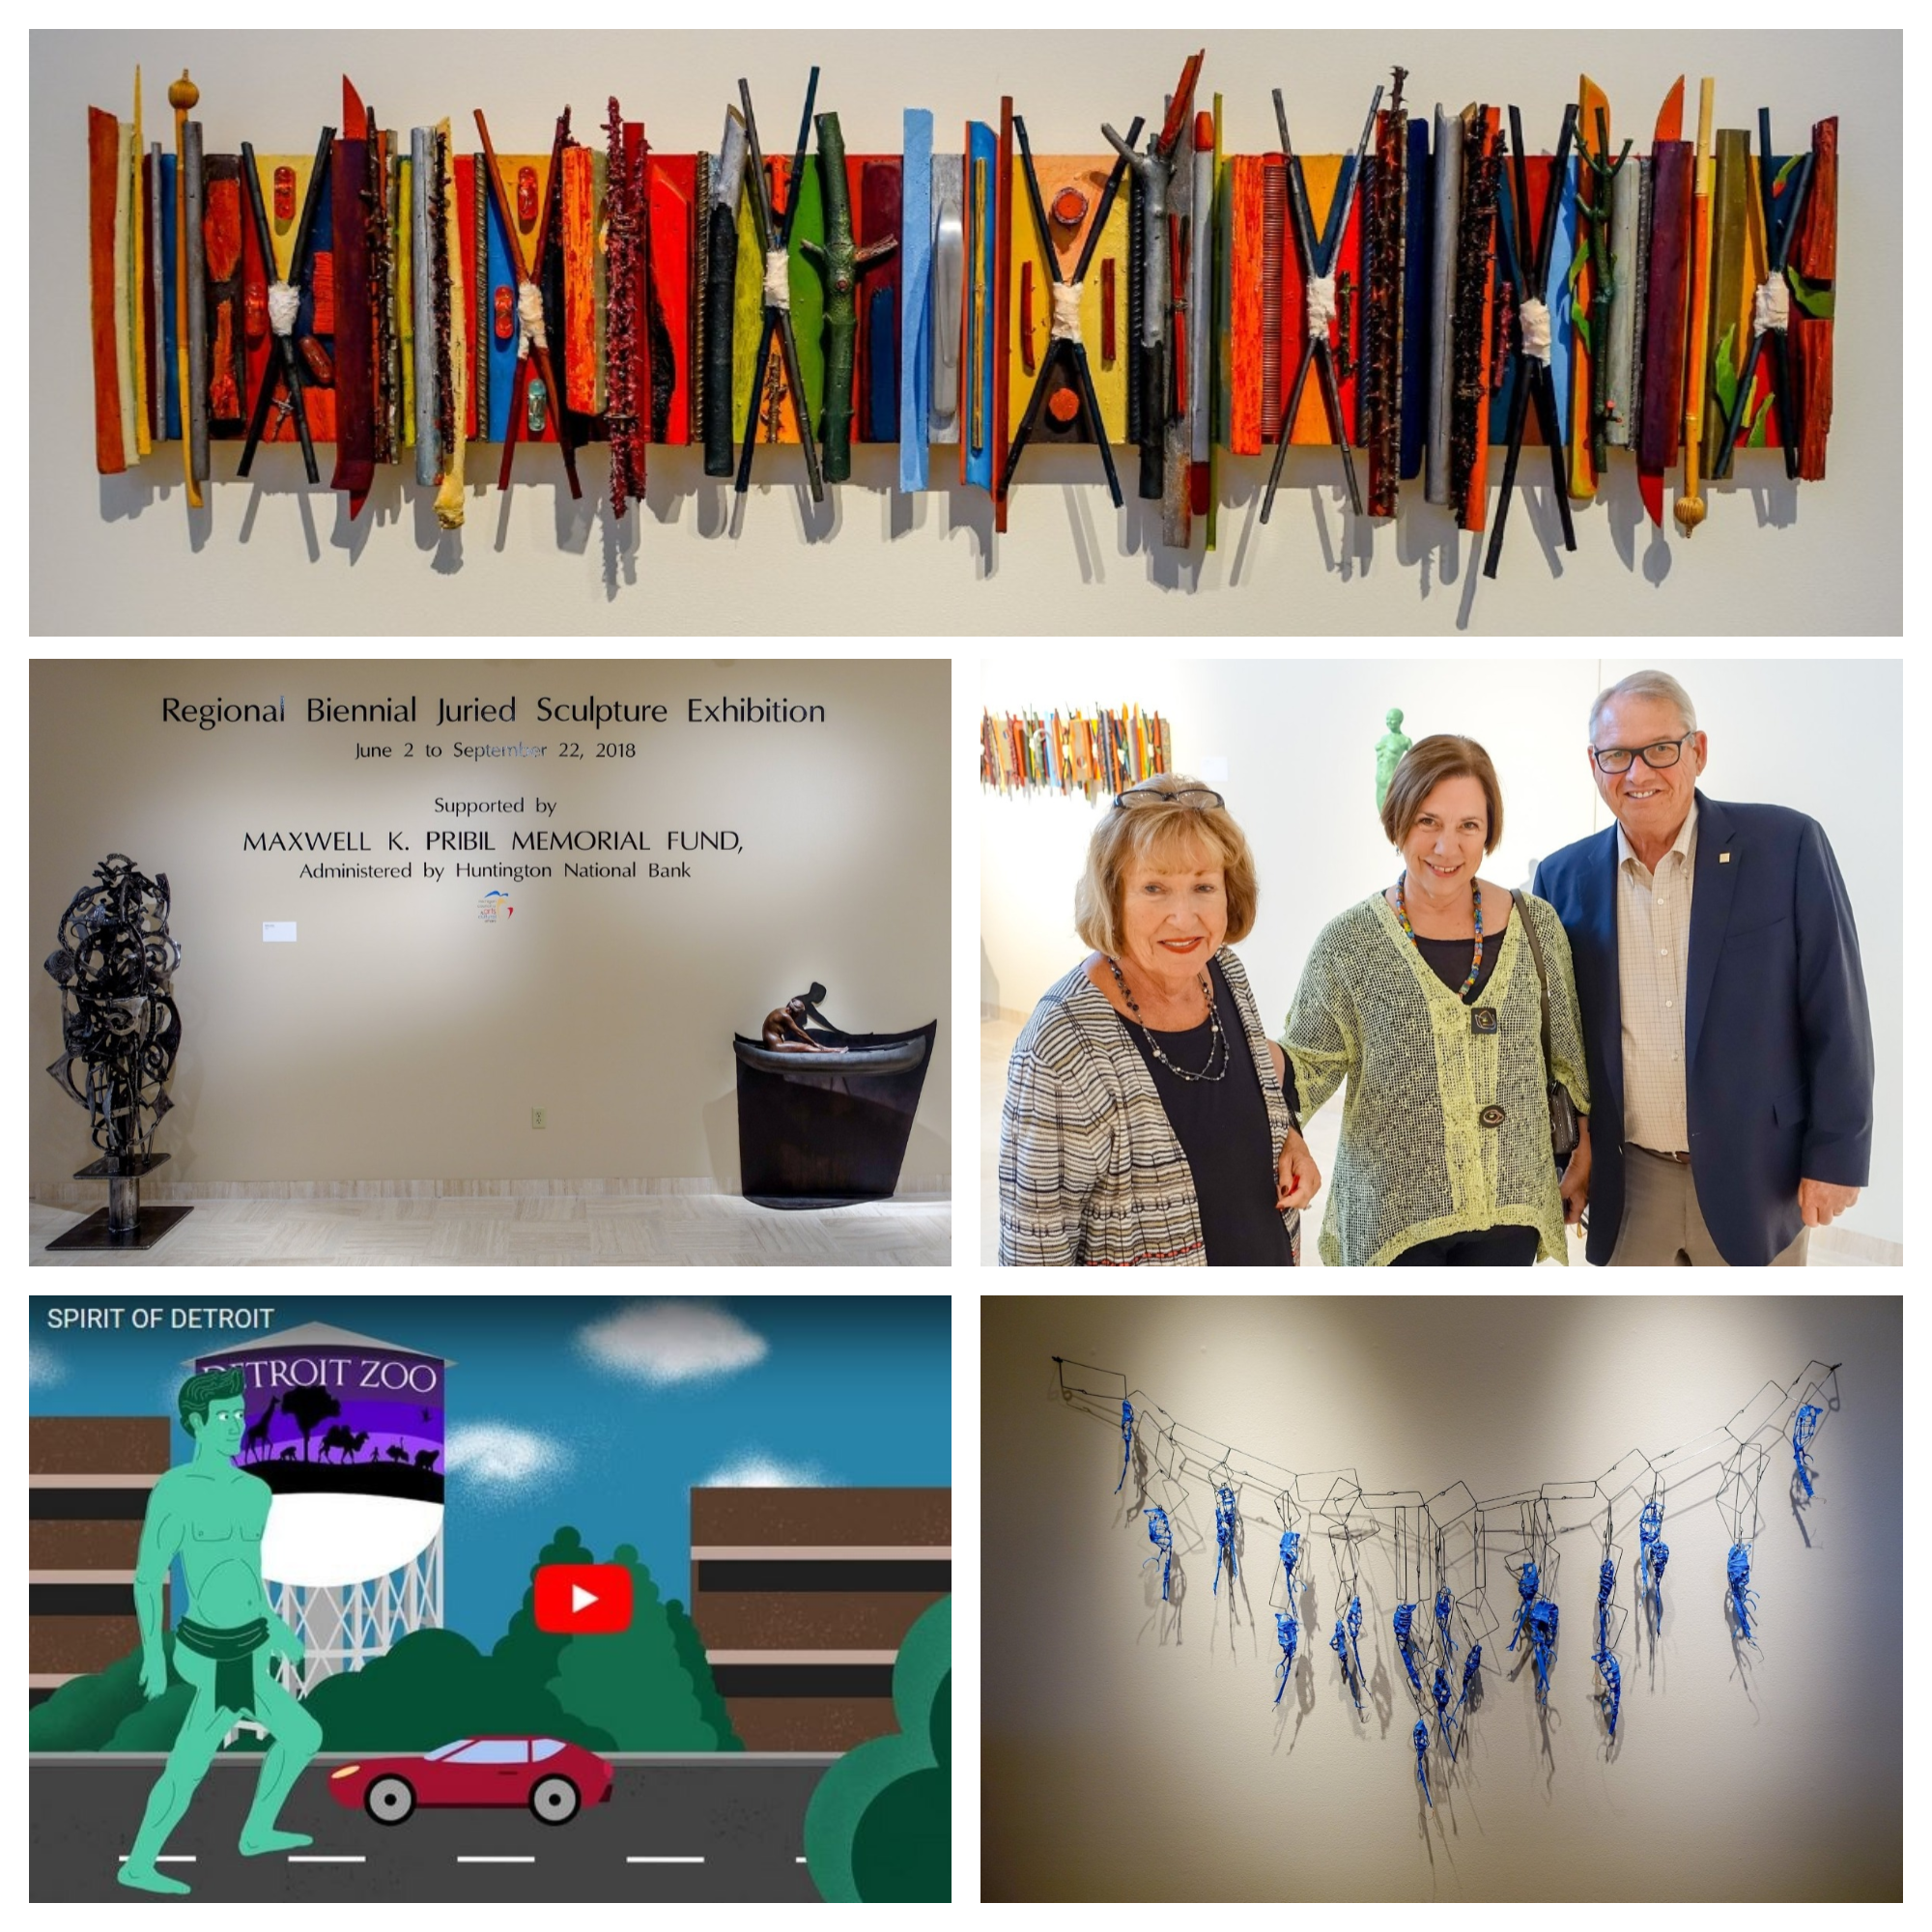 A collage of artwork at the biennial juried art show